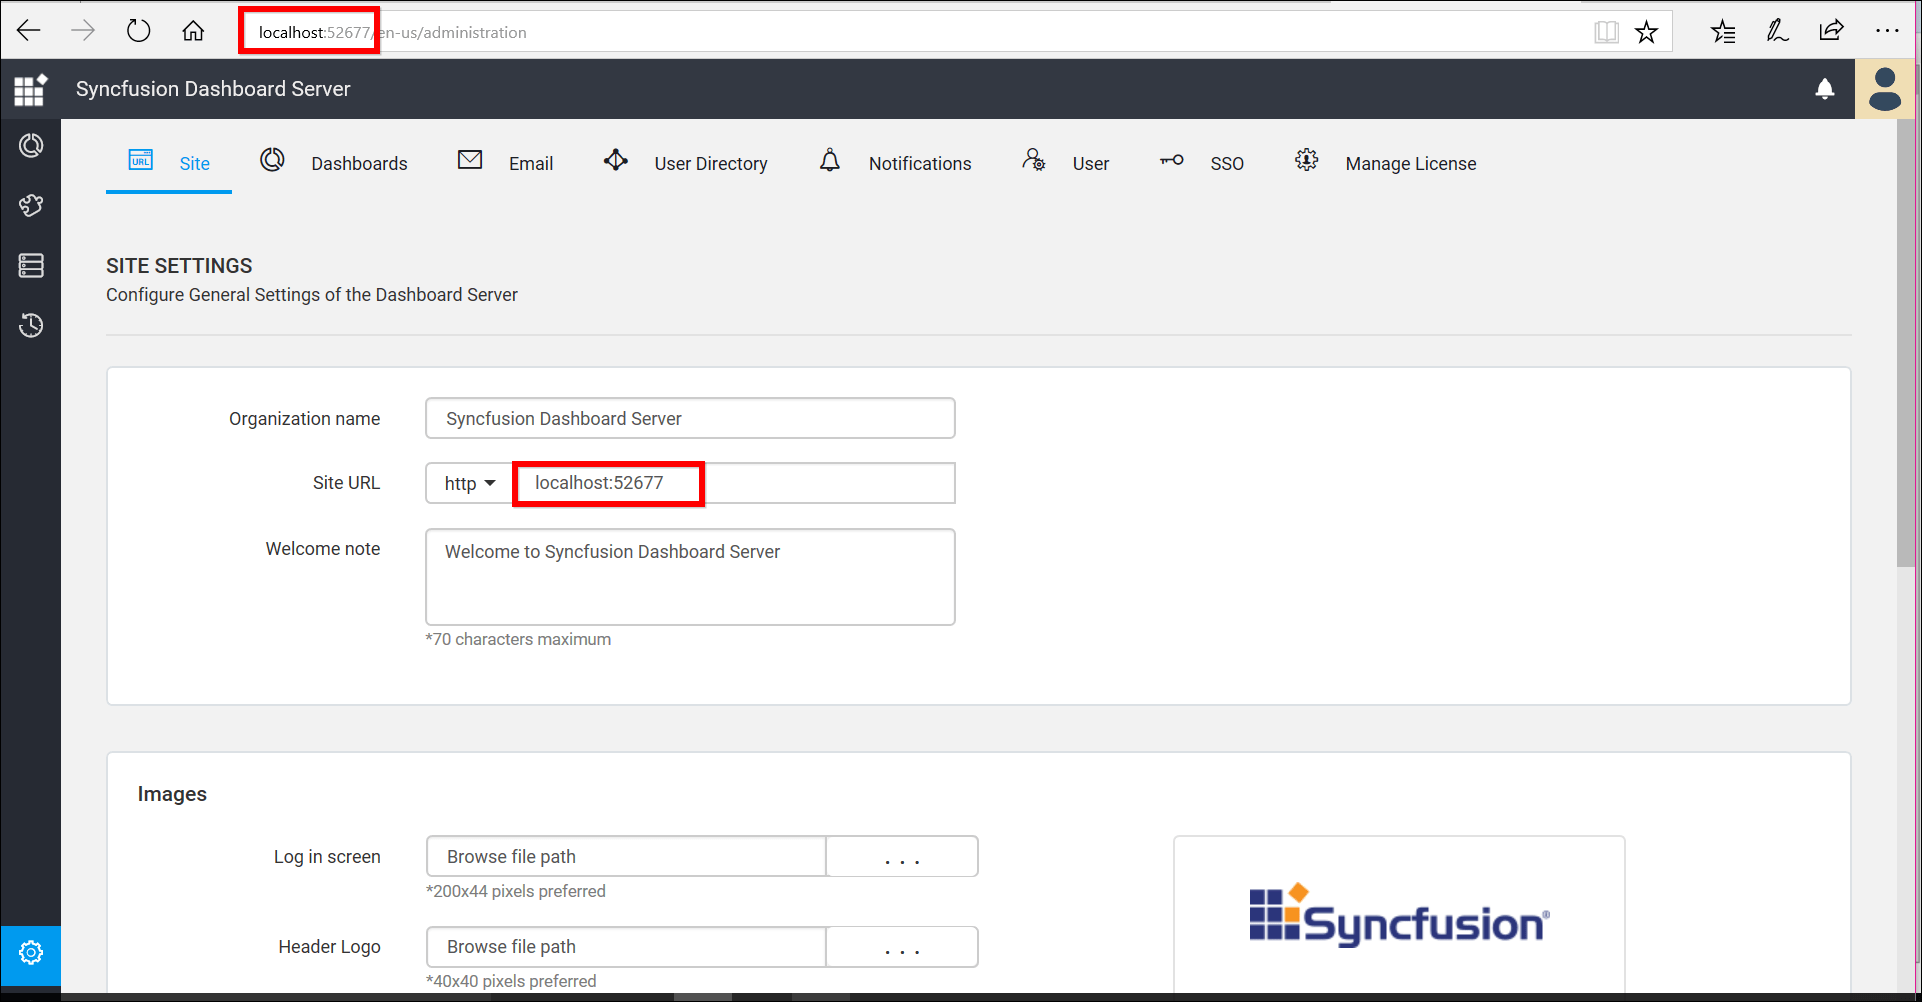 Upgrade Syncfusion Dashboard Server From Any Version To 3 2